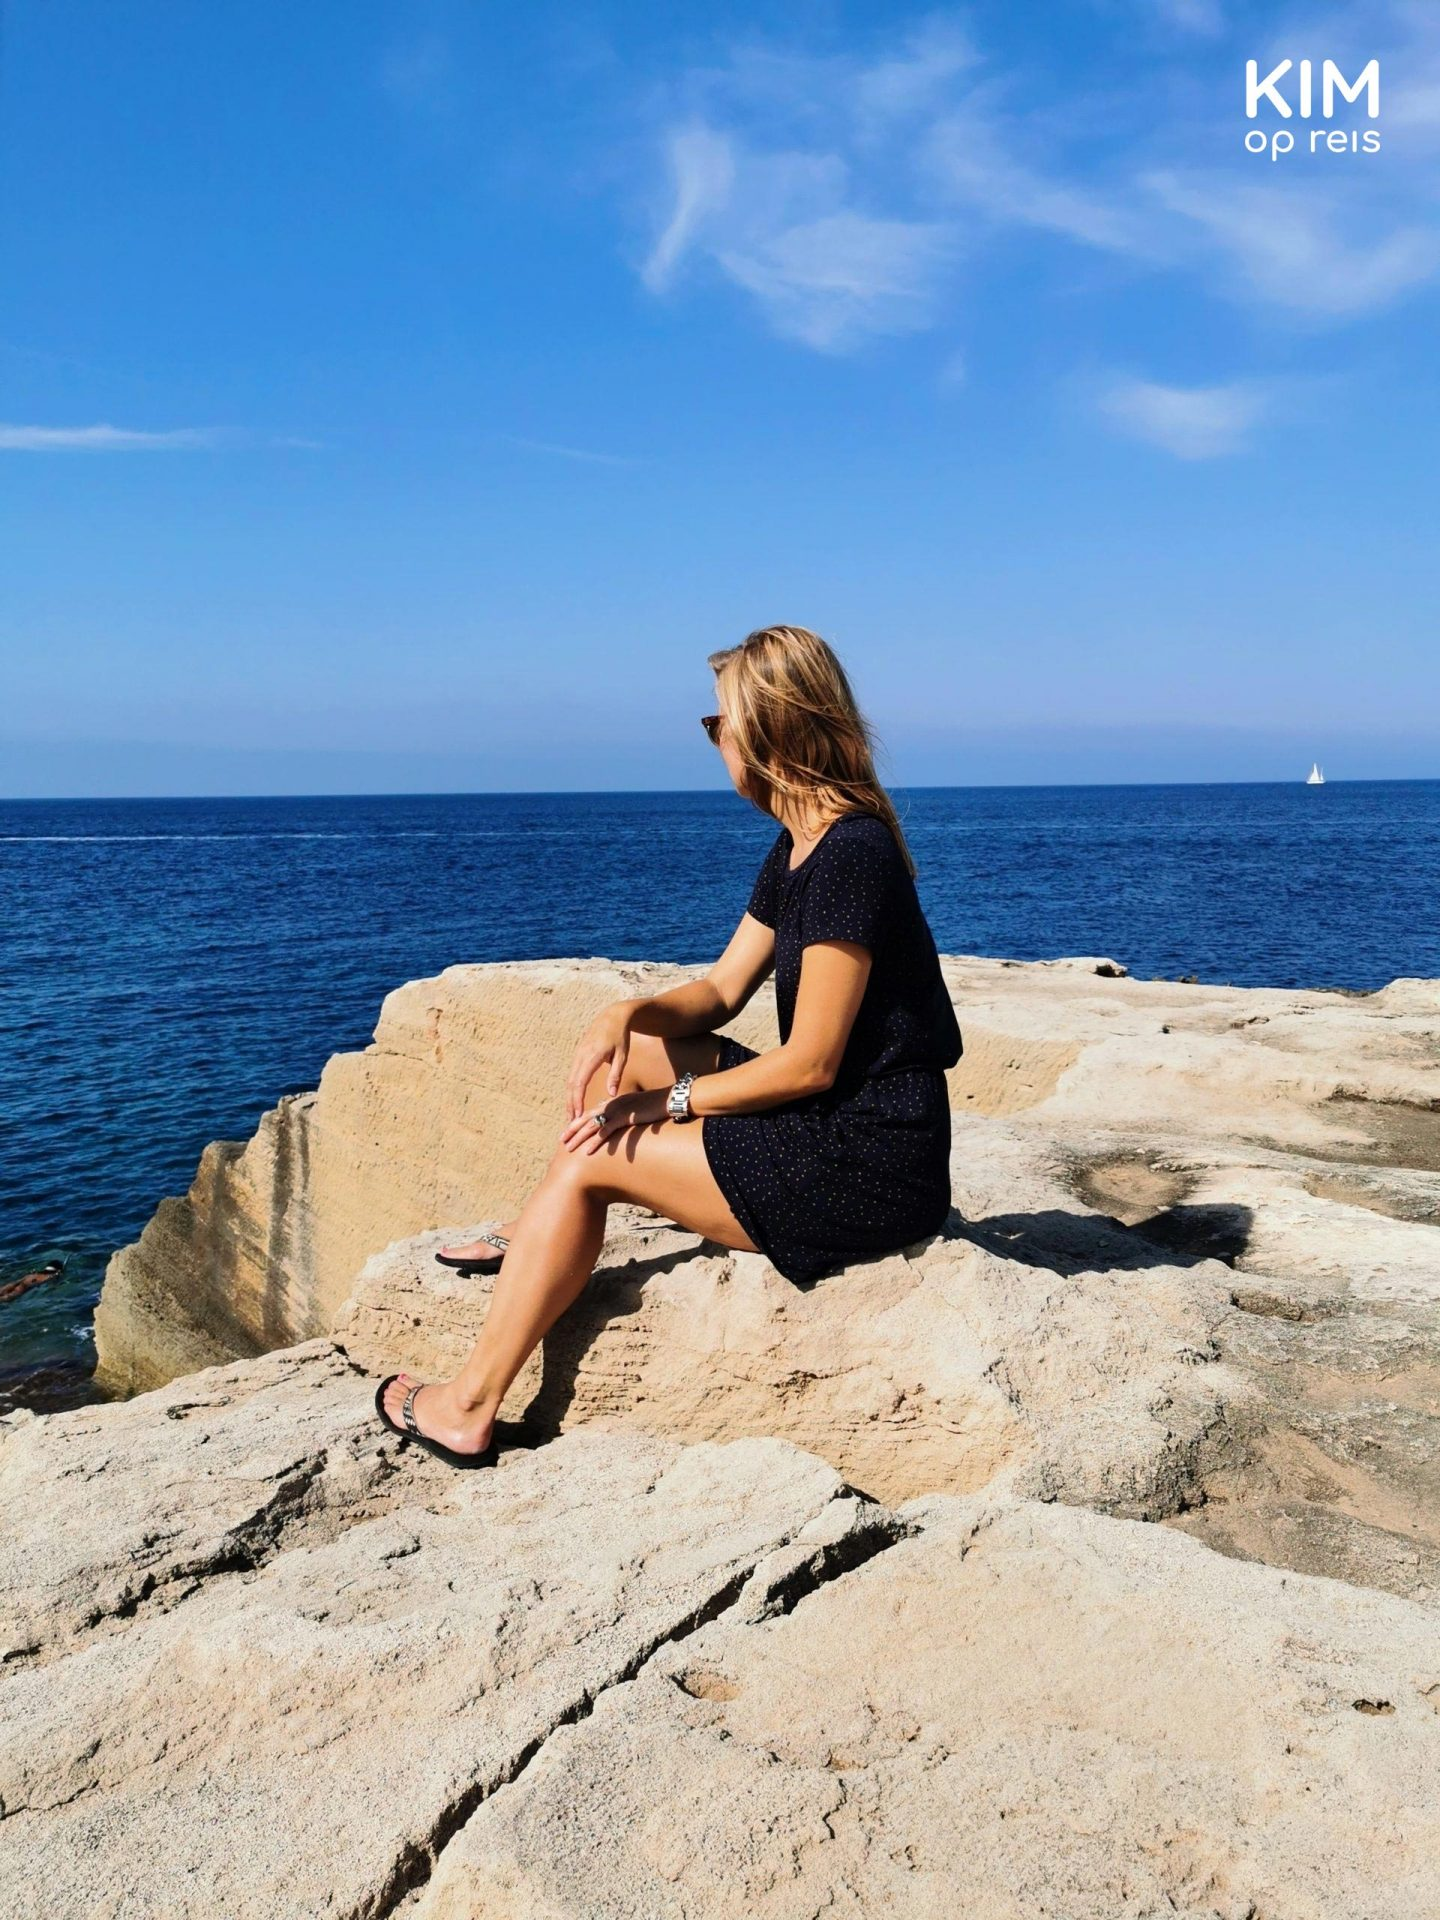 Find peace Ibiza: Kim watches the ocean from the rocks